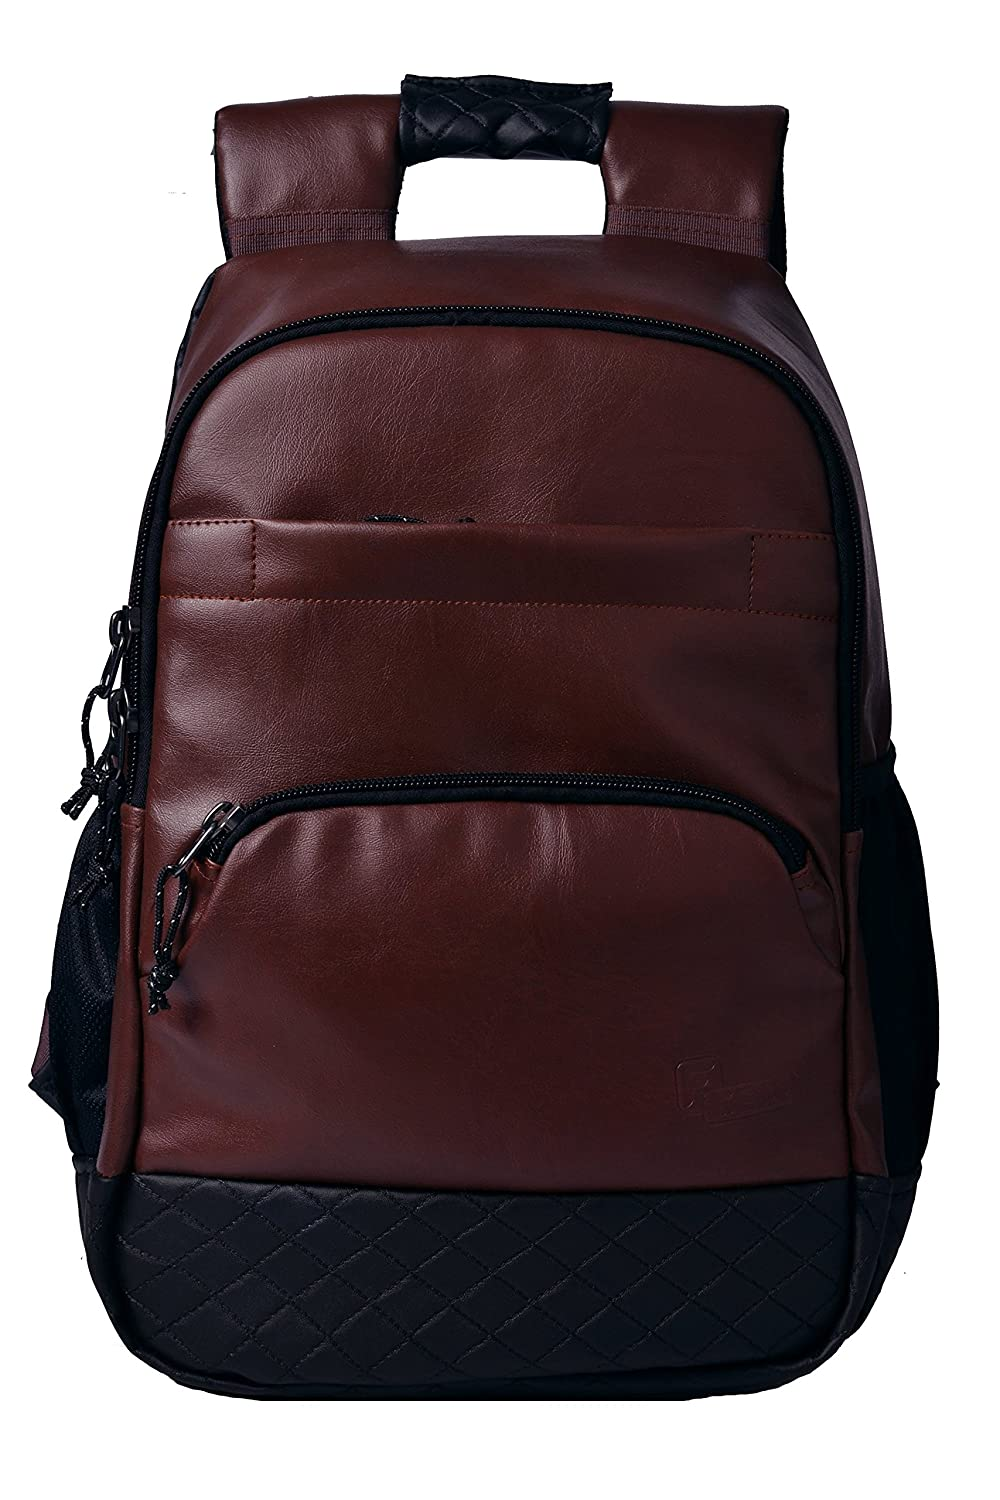 F Gear Luxur Anti Theft25 Ltrs Brown Laptop Backpack (2743)